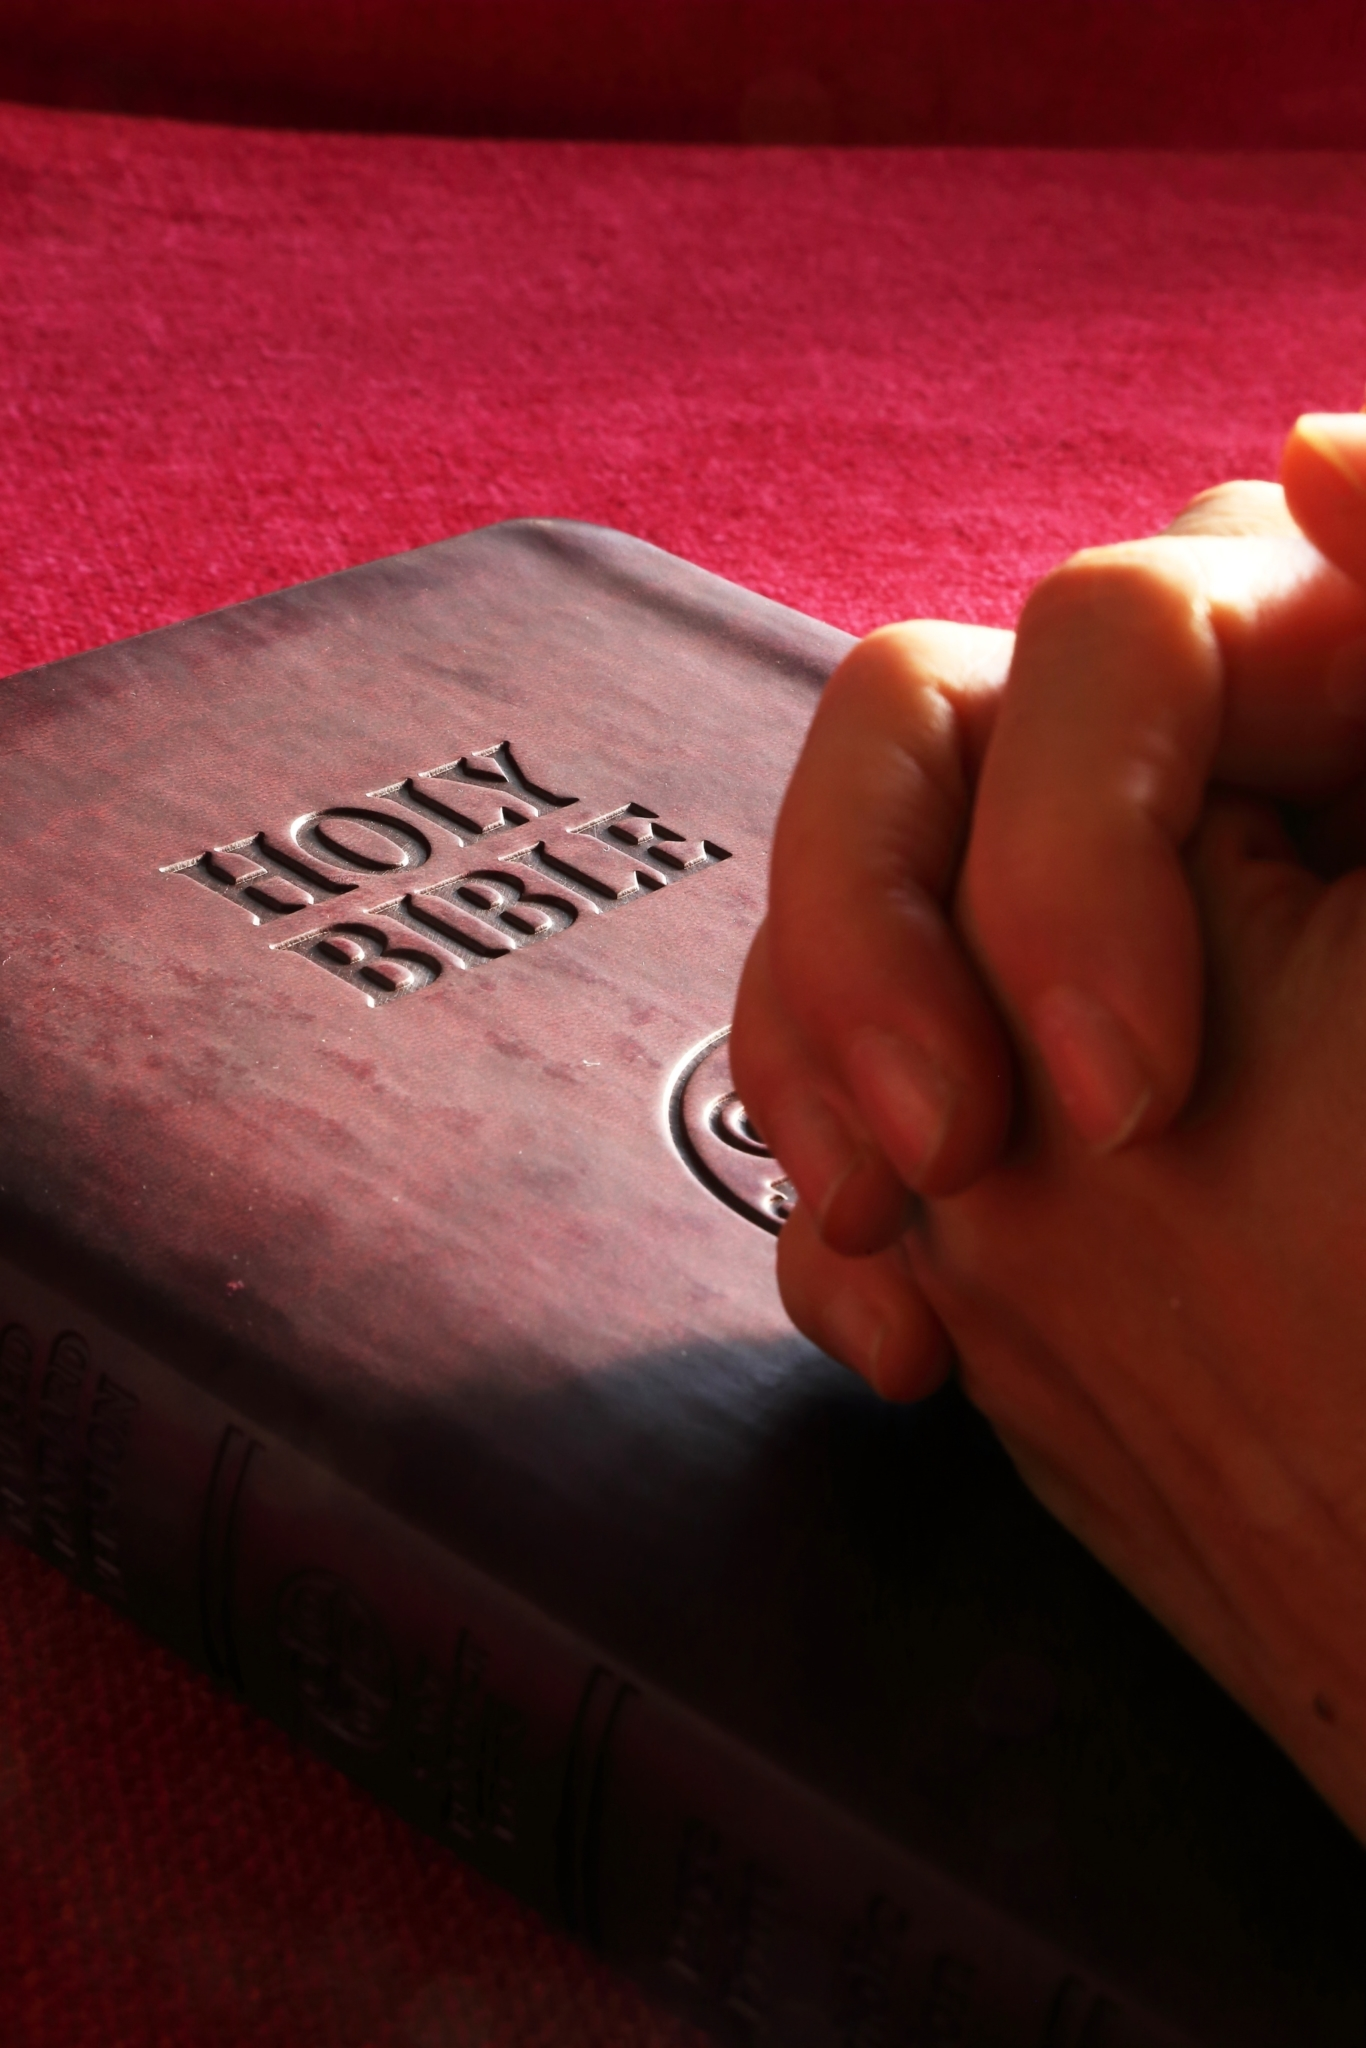 Hands clasped on Bible